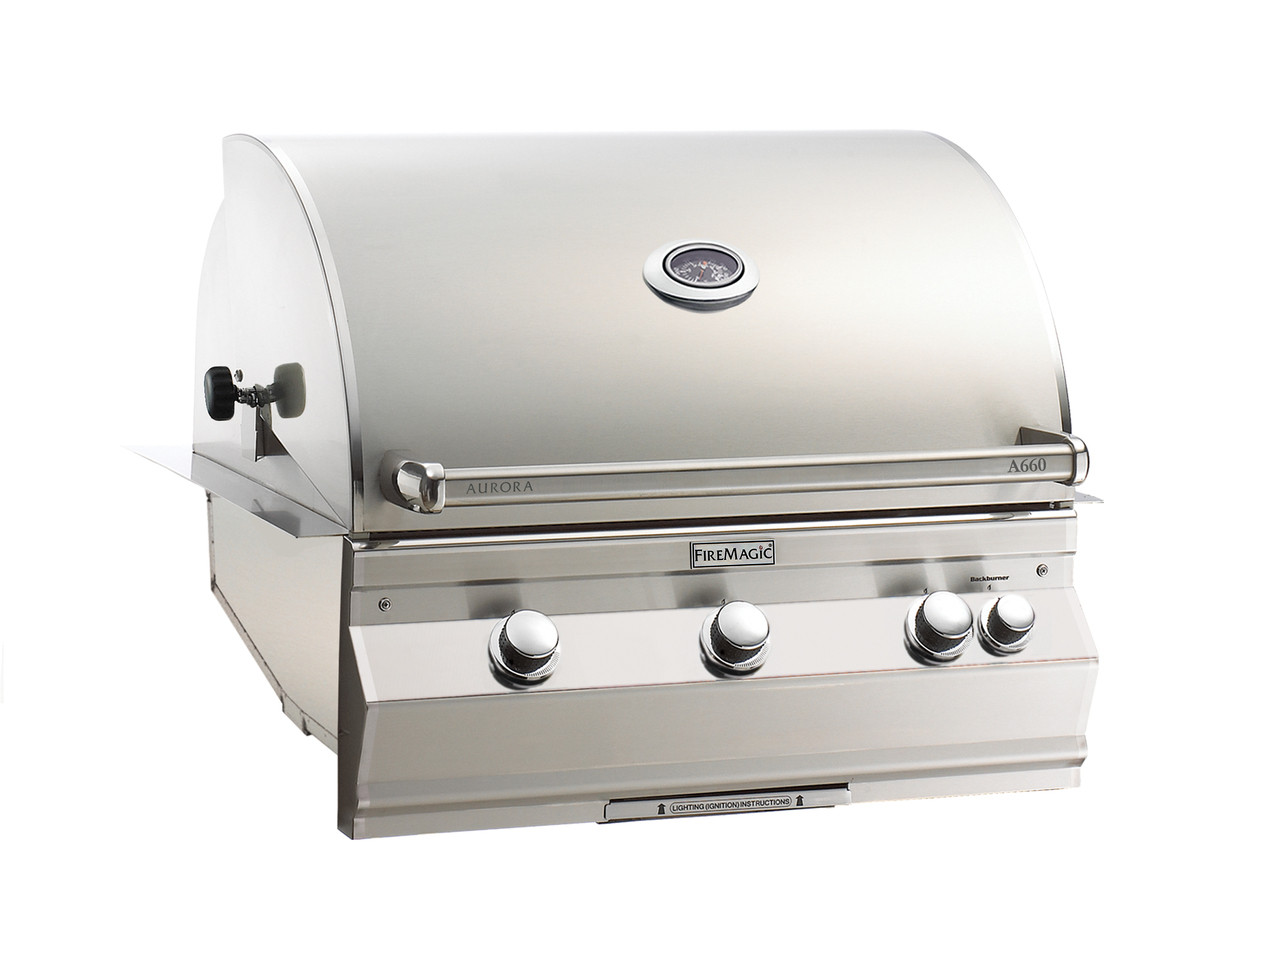 Firemagic Aurora A660i Built-In Grill - Analog Style